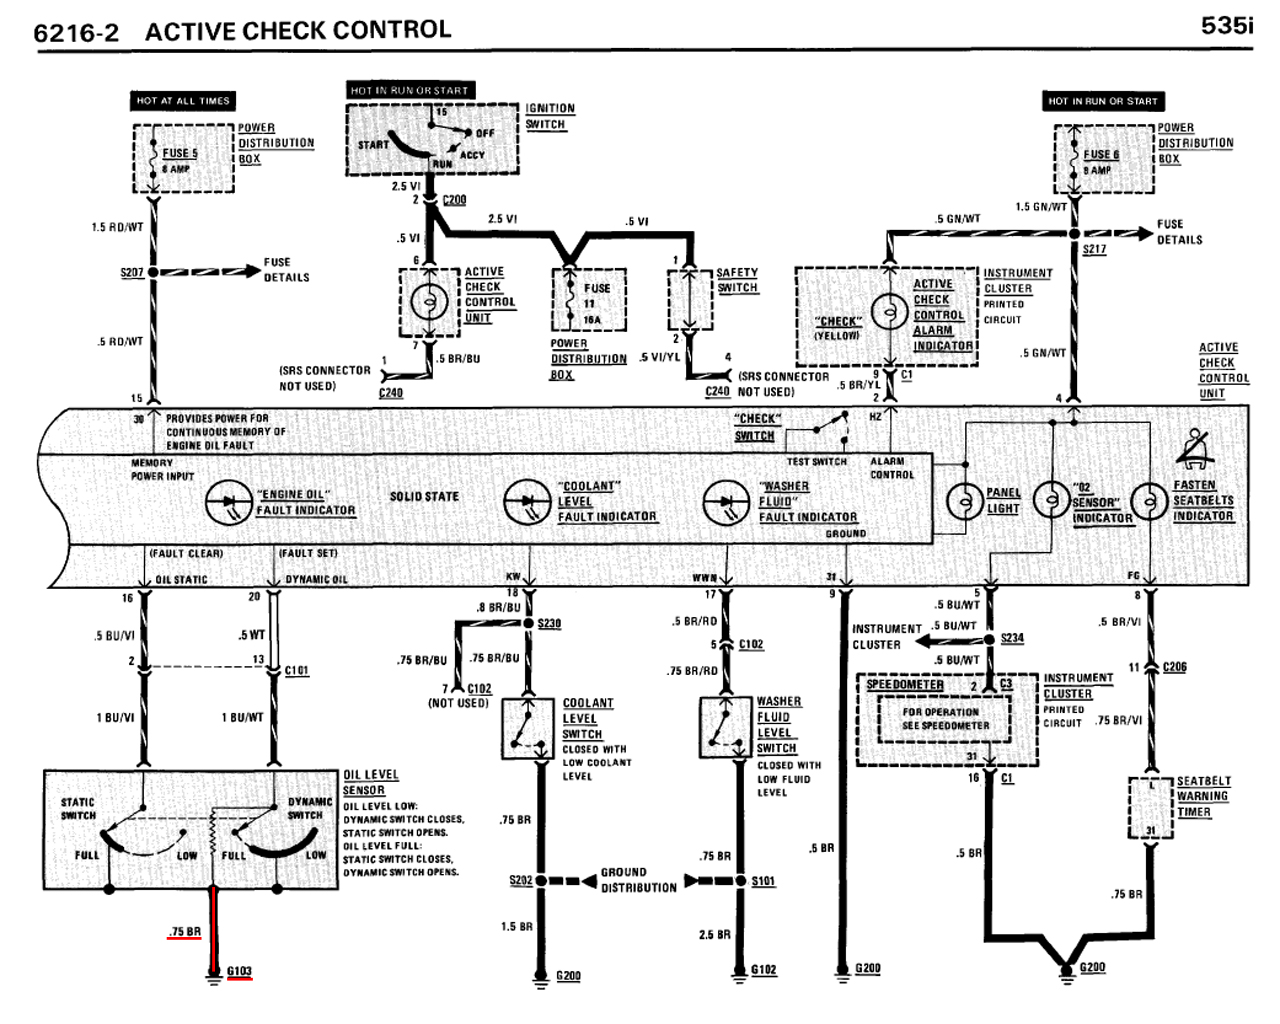 ... Chevy Truck Tail Light Wiring Diagram. 2010 07 23 013626 1957 Ford  wiring likewise likewise moreover HeadlightRelayWiringDiagram besides  headlight ...